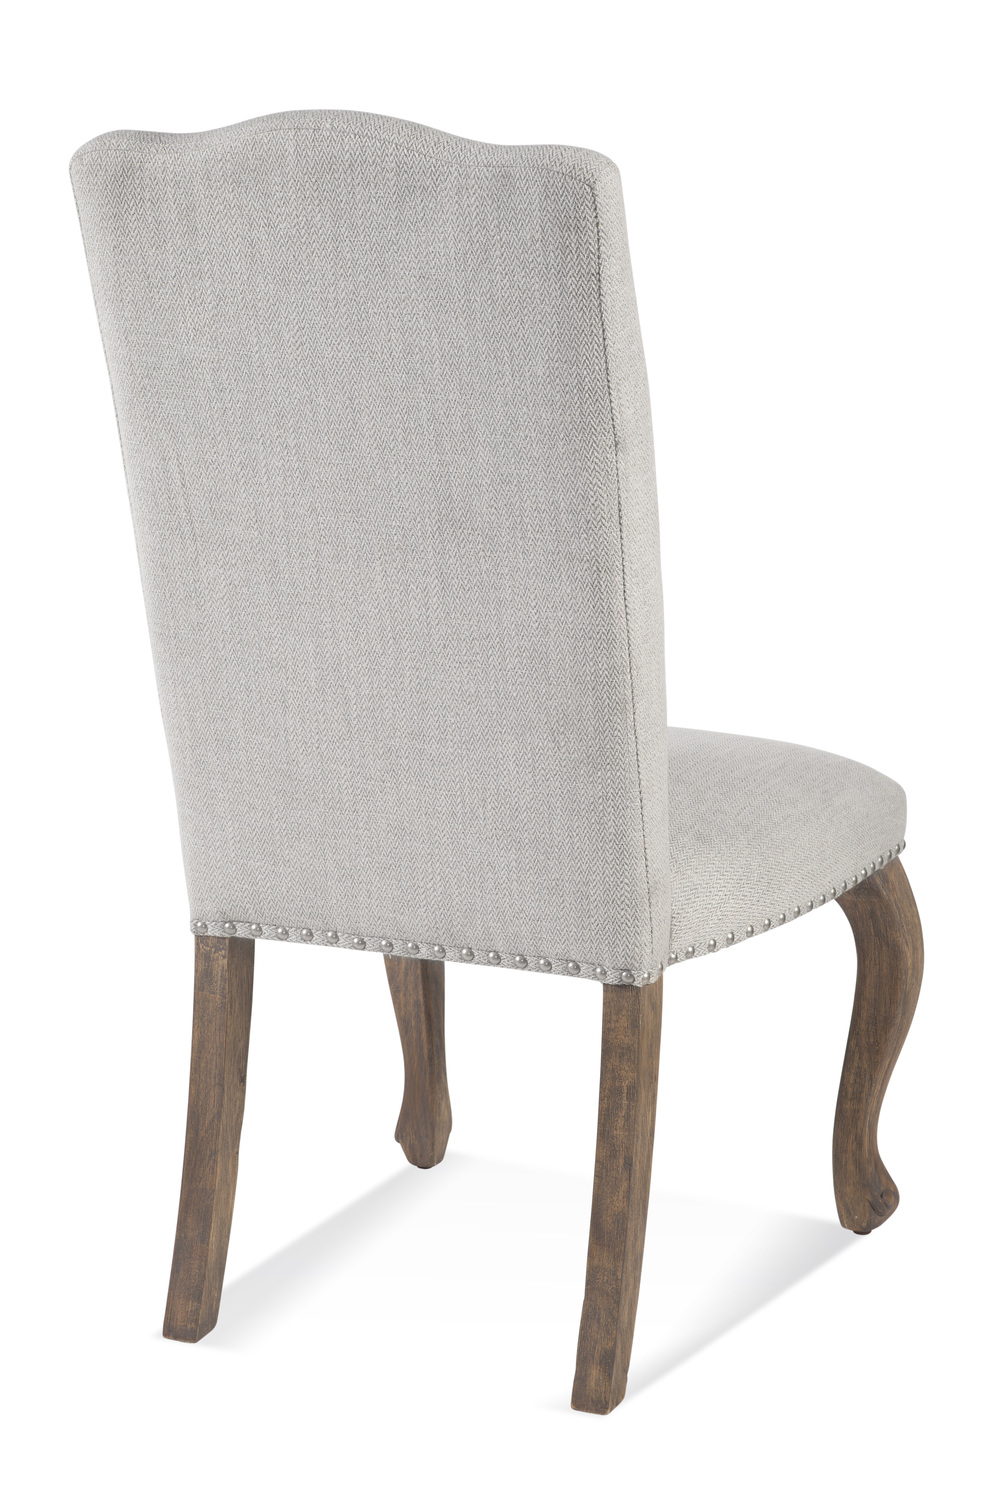 Bassett Mirror Company - Melody Side Chair